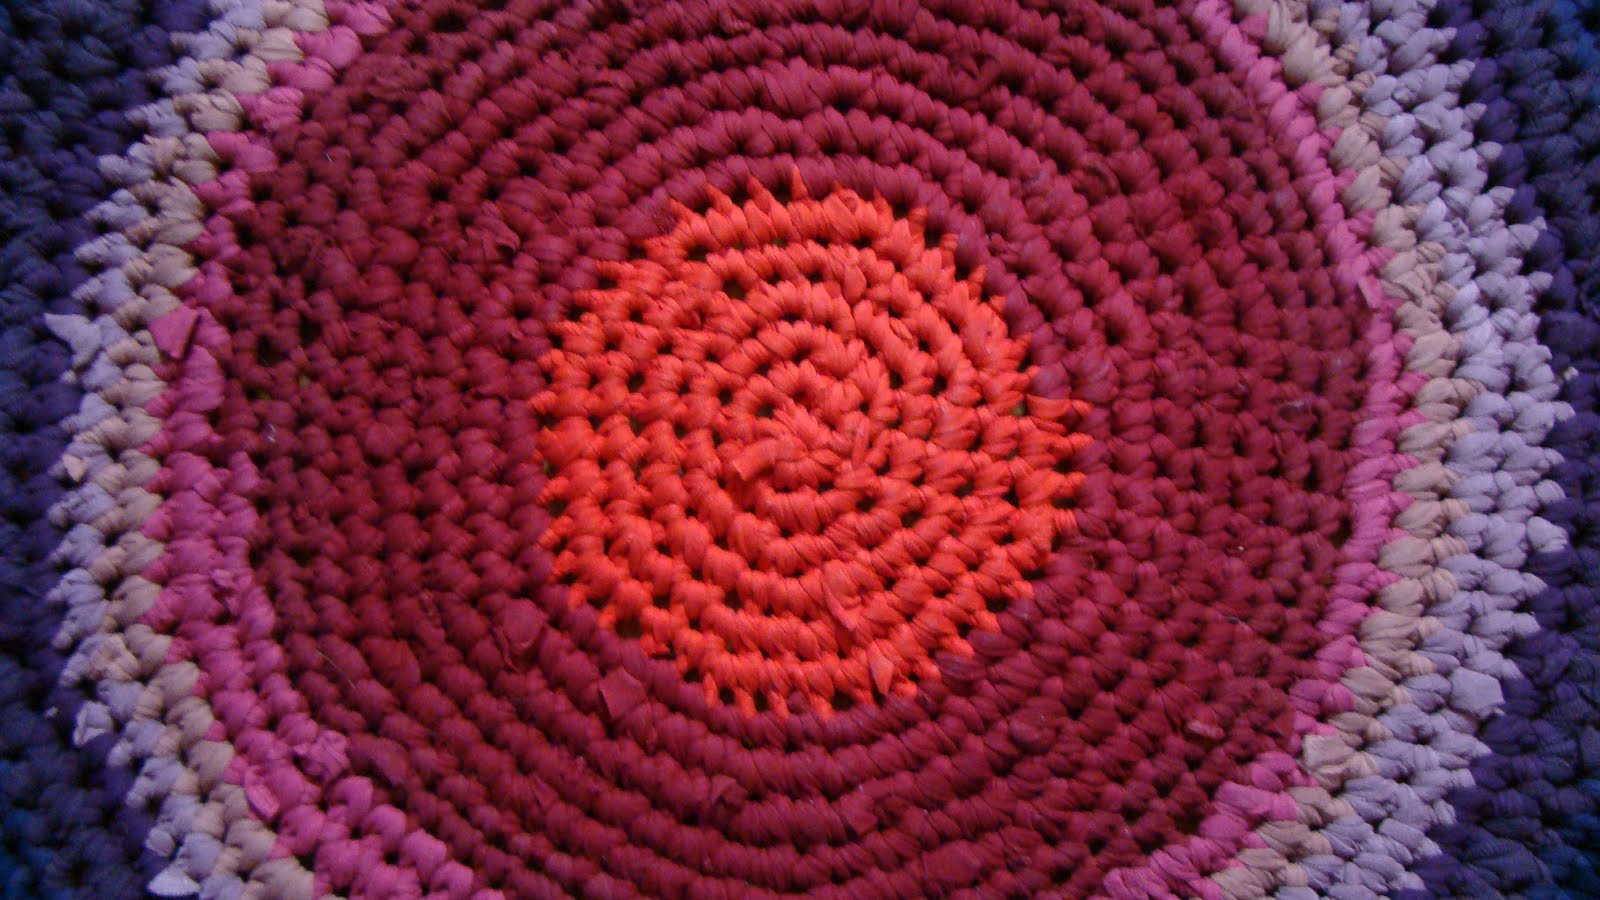 Crocheted Rug!